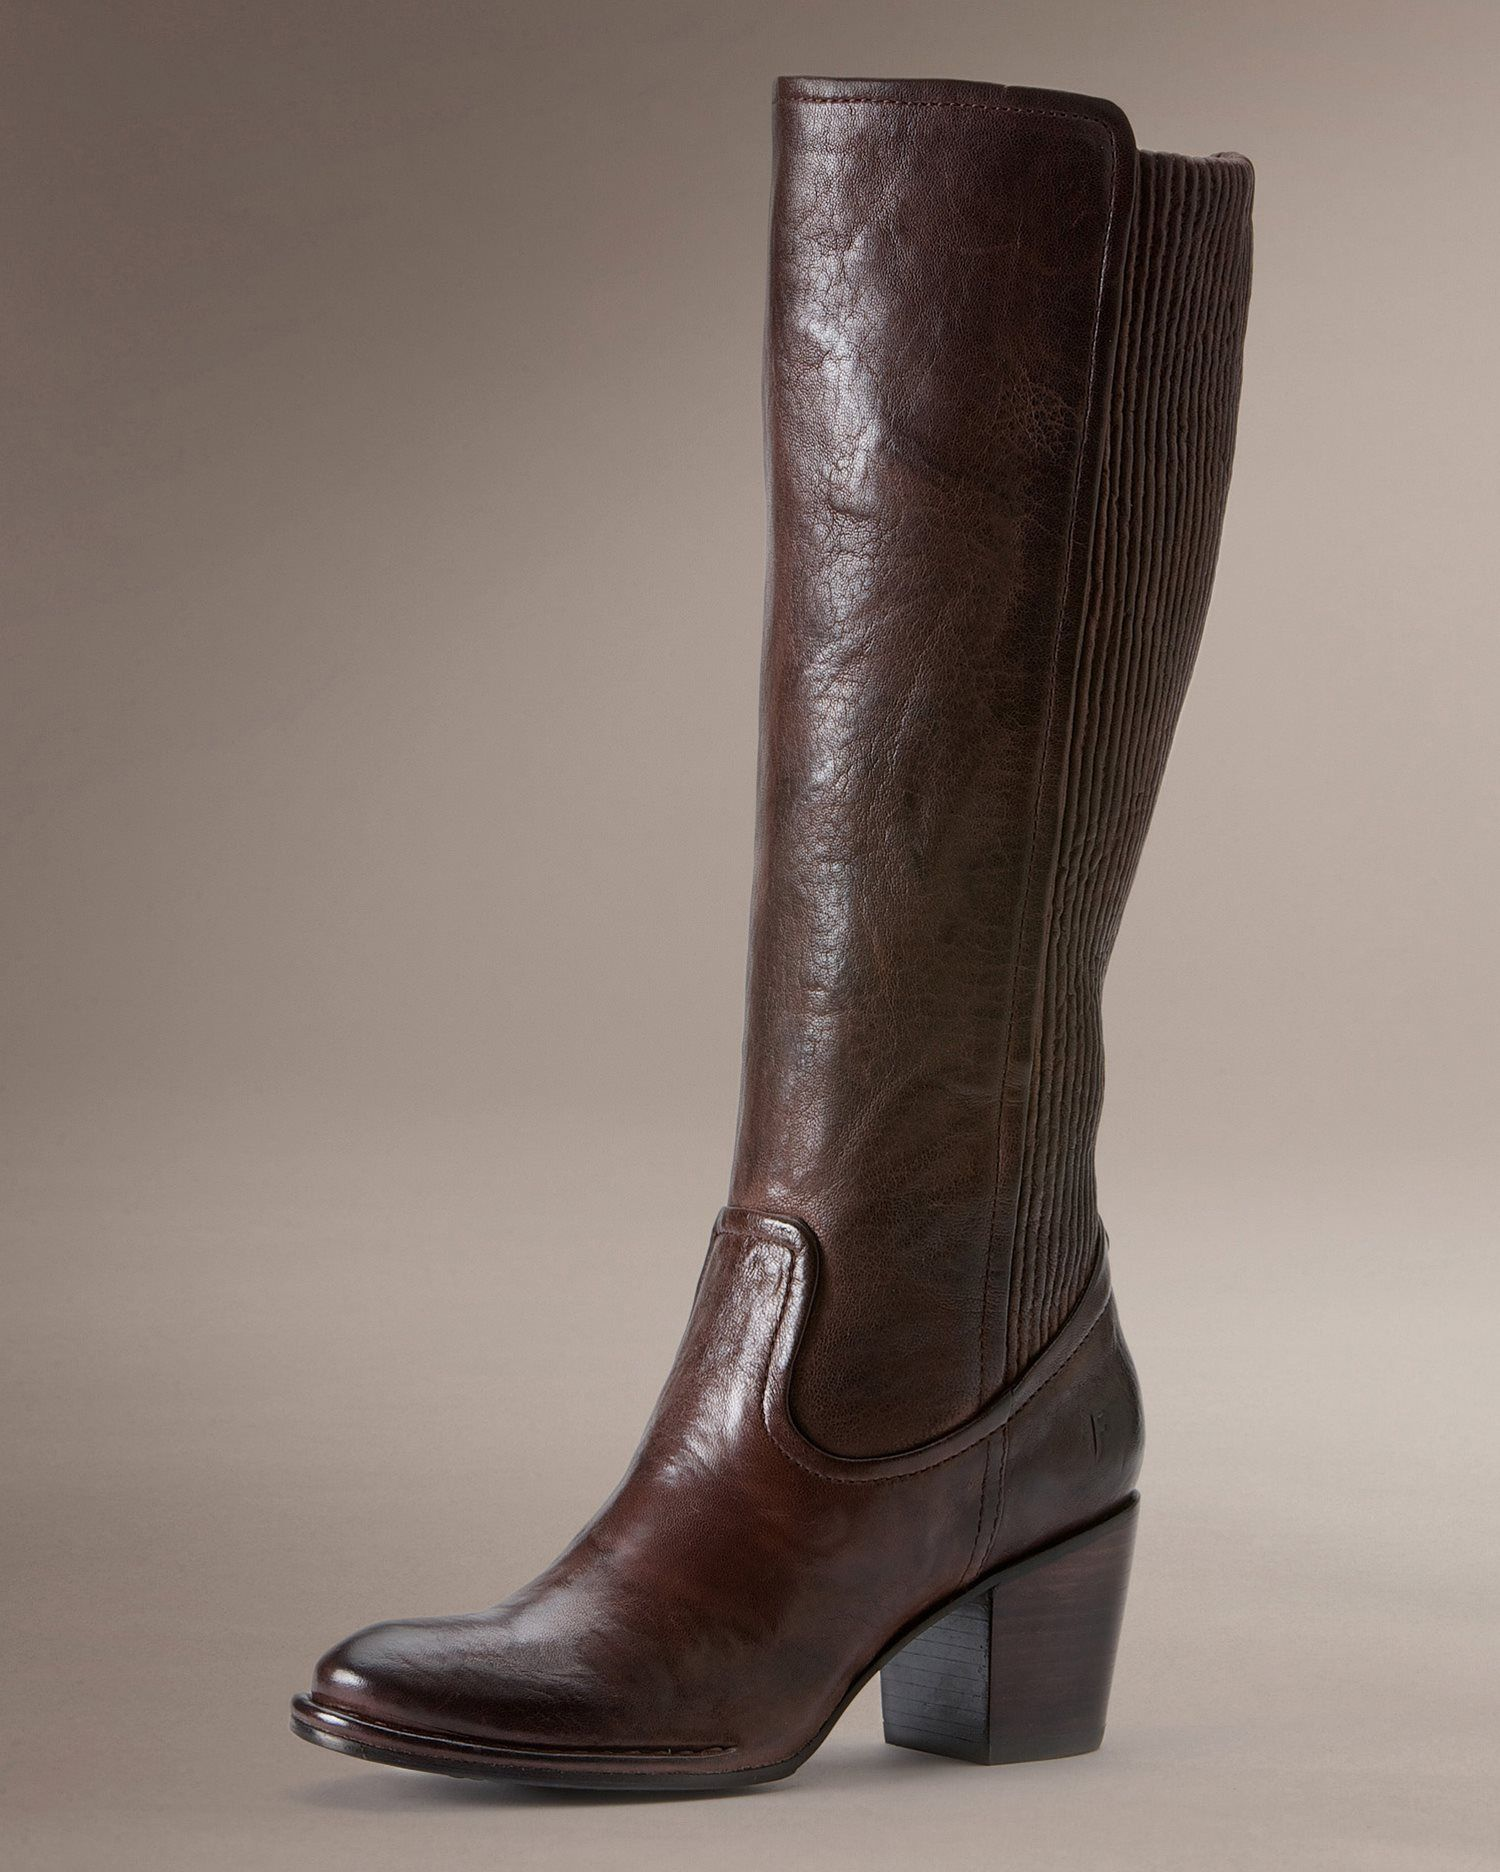 Lucinda Scrunch | Boots, Frye leather